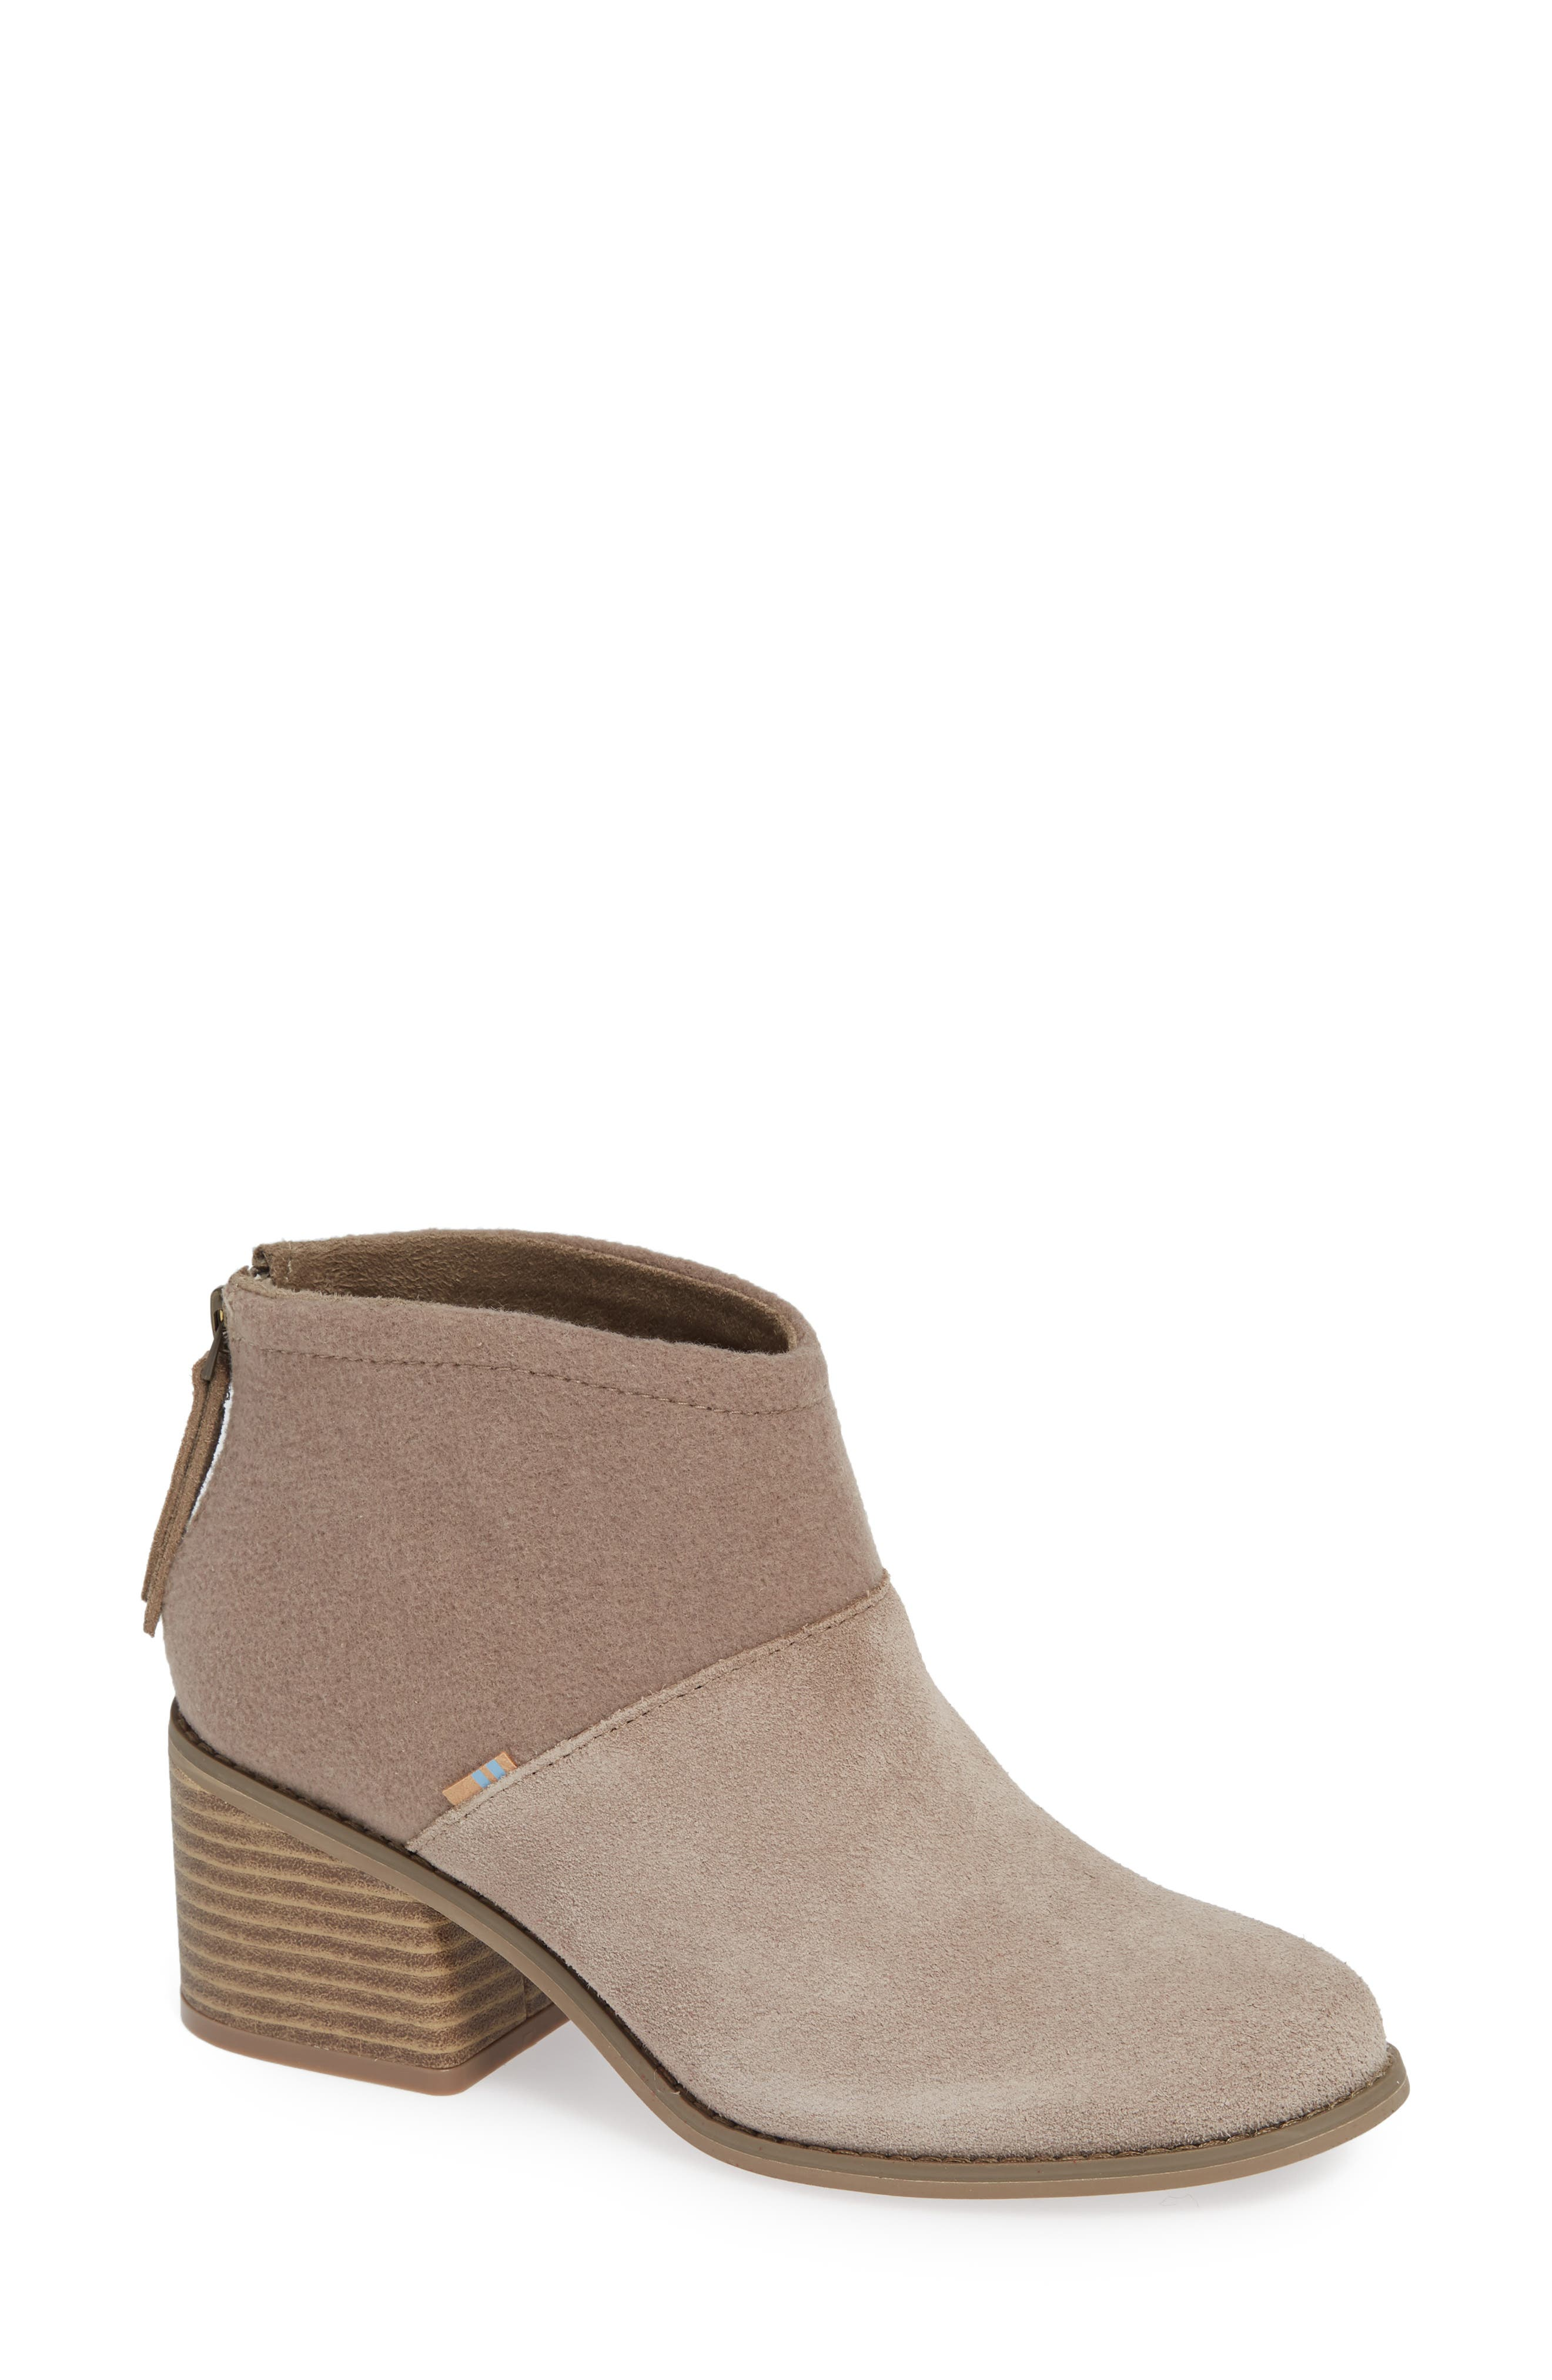 TOMS Women'S Lacy Round Toe Suede Bootie in Desert Taupe Suede